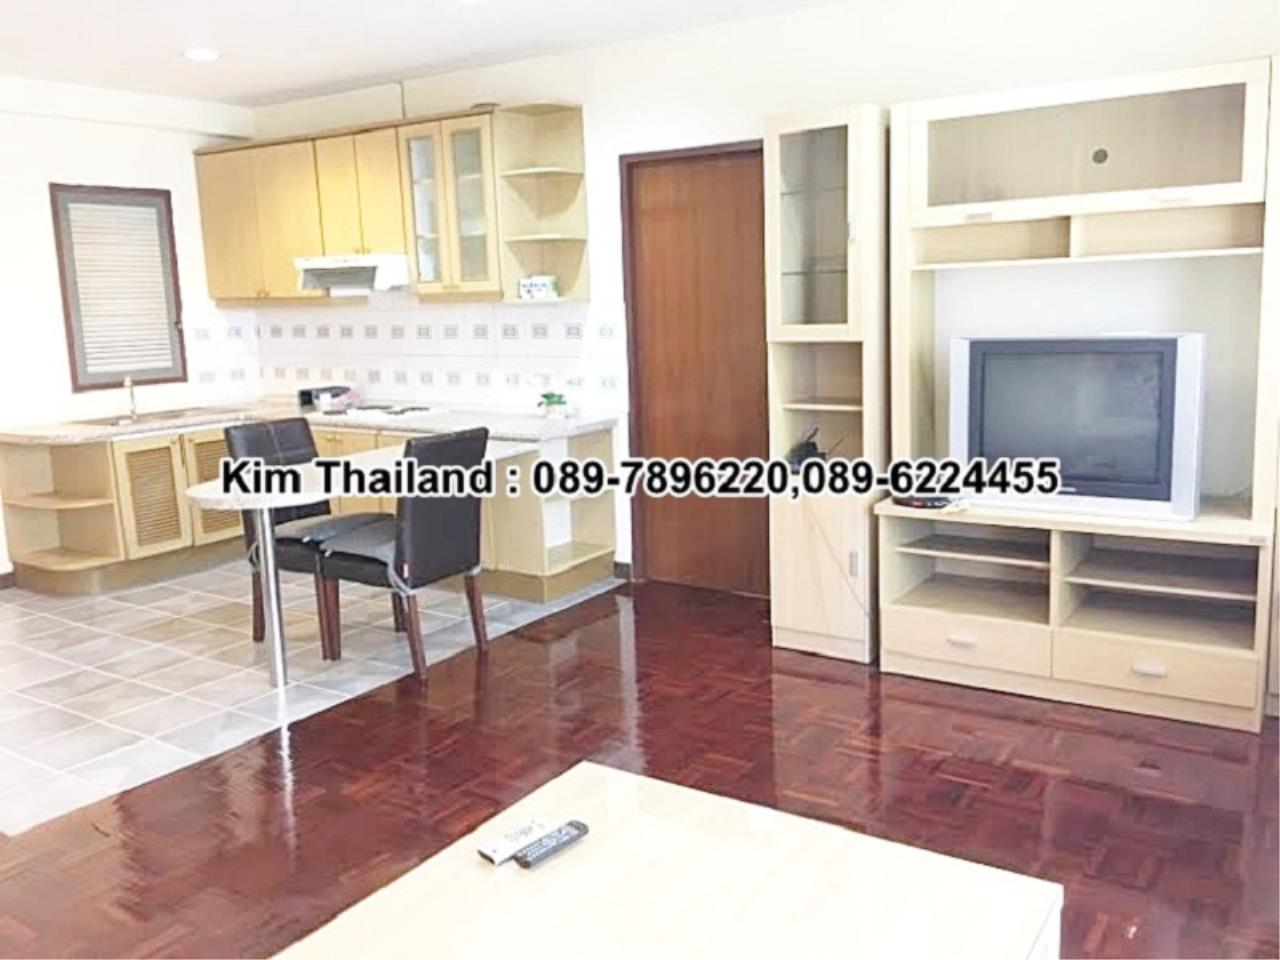 BKKcondorental Agency's For rent, Condo Saranjai Mansion. Area 63 sq.m. 1 bedroom. Rent 20,000baht/month 7